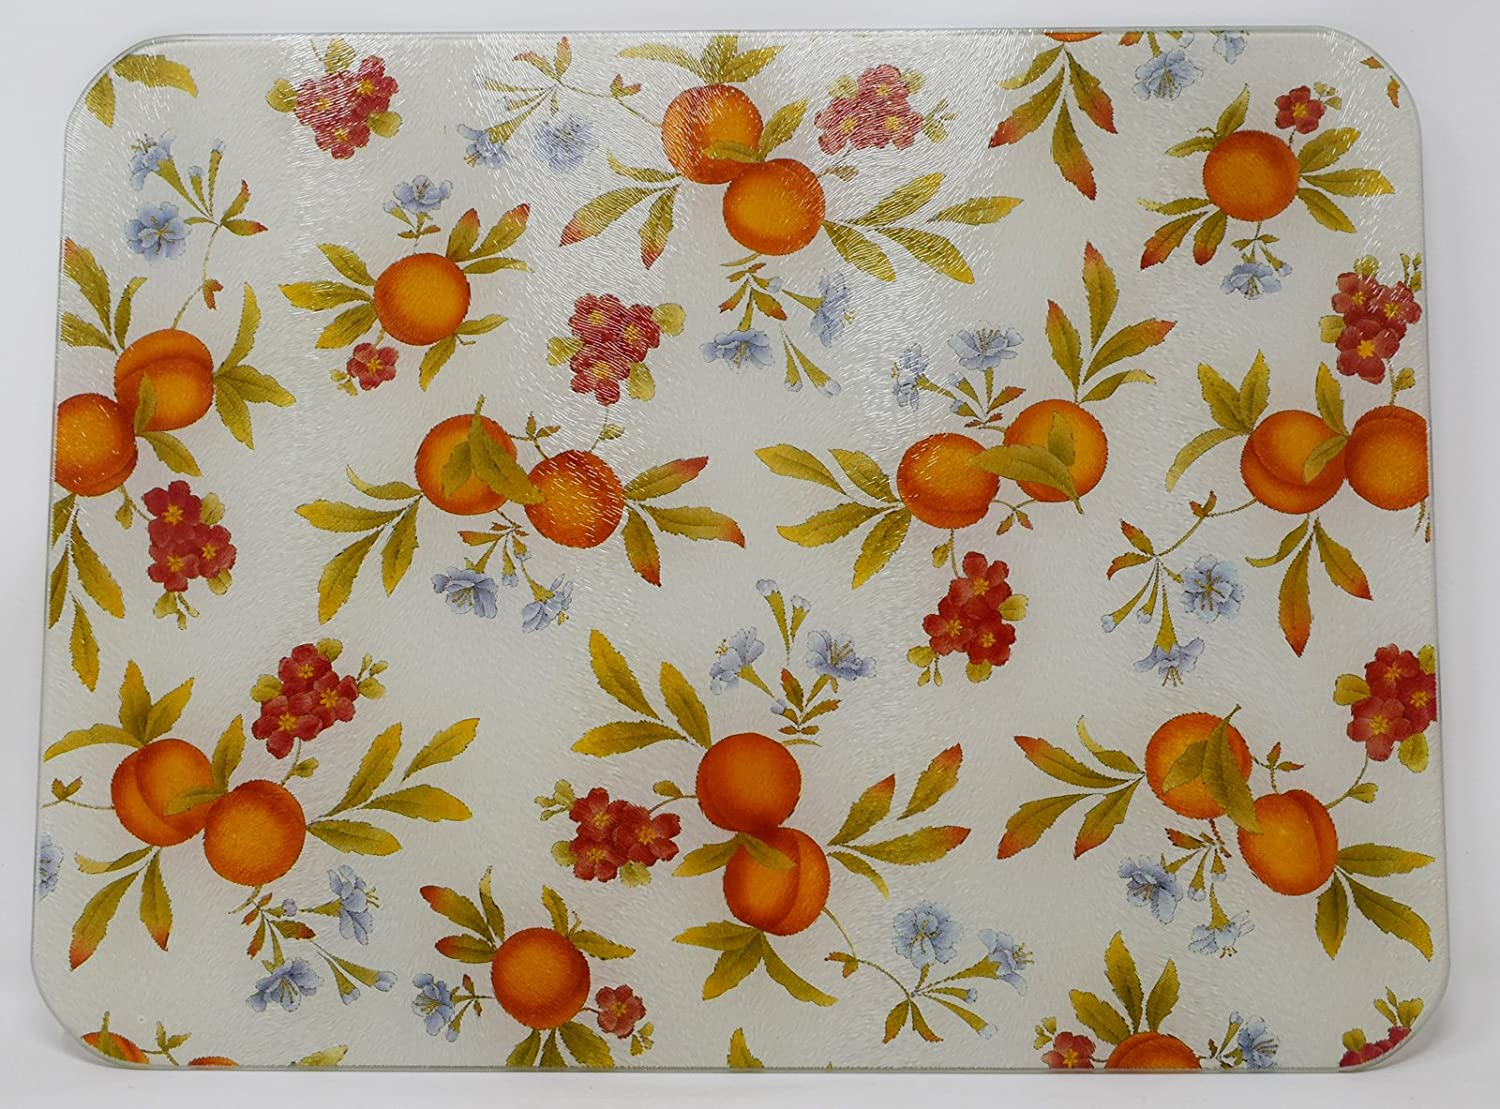 Premium Large Glass Chopping Board - Peaches & Cream Design Kitchen Worktop Saver Protector